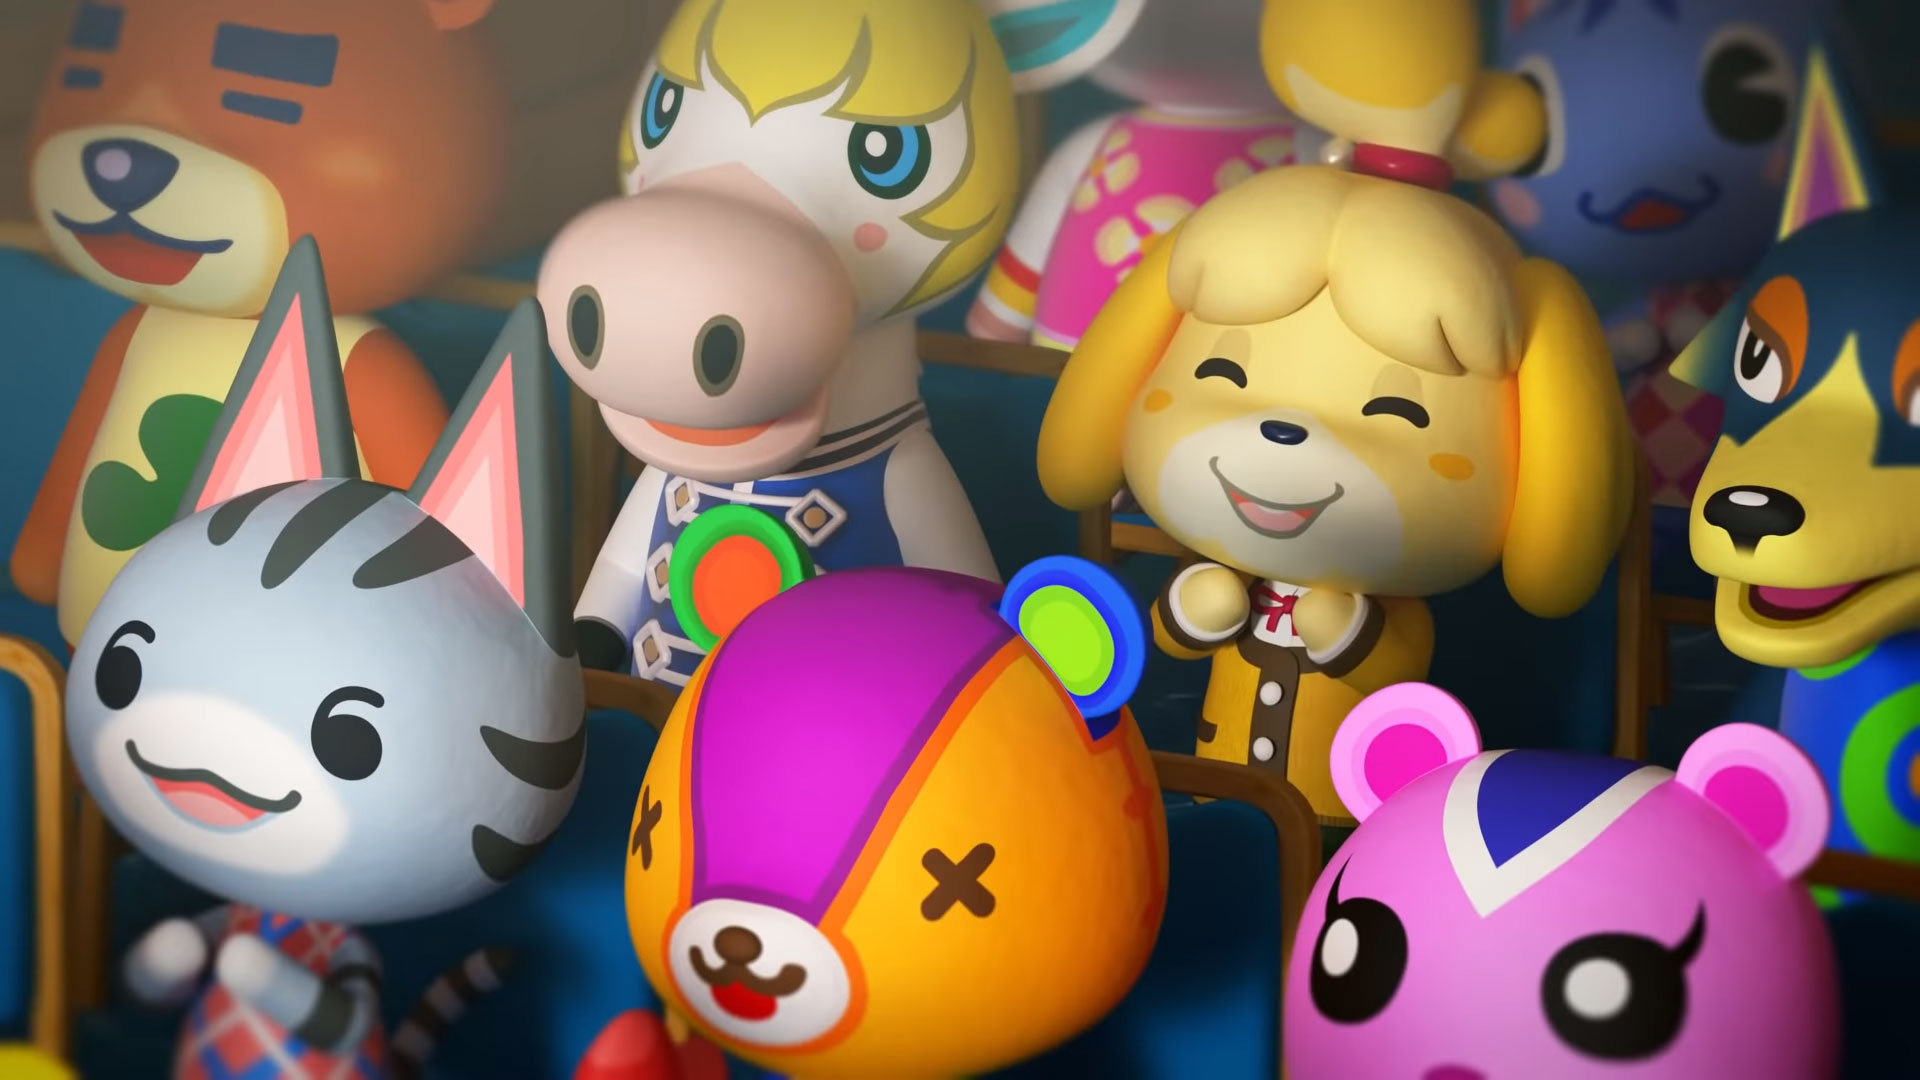 Hd Animal Crossing Wallpapers You Need To Make Your Desktop Background